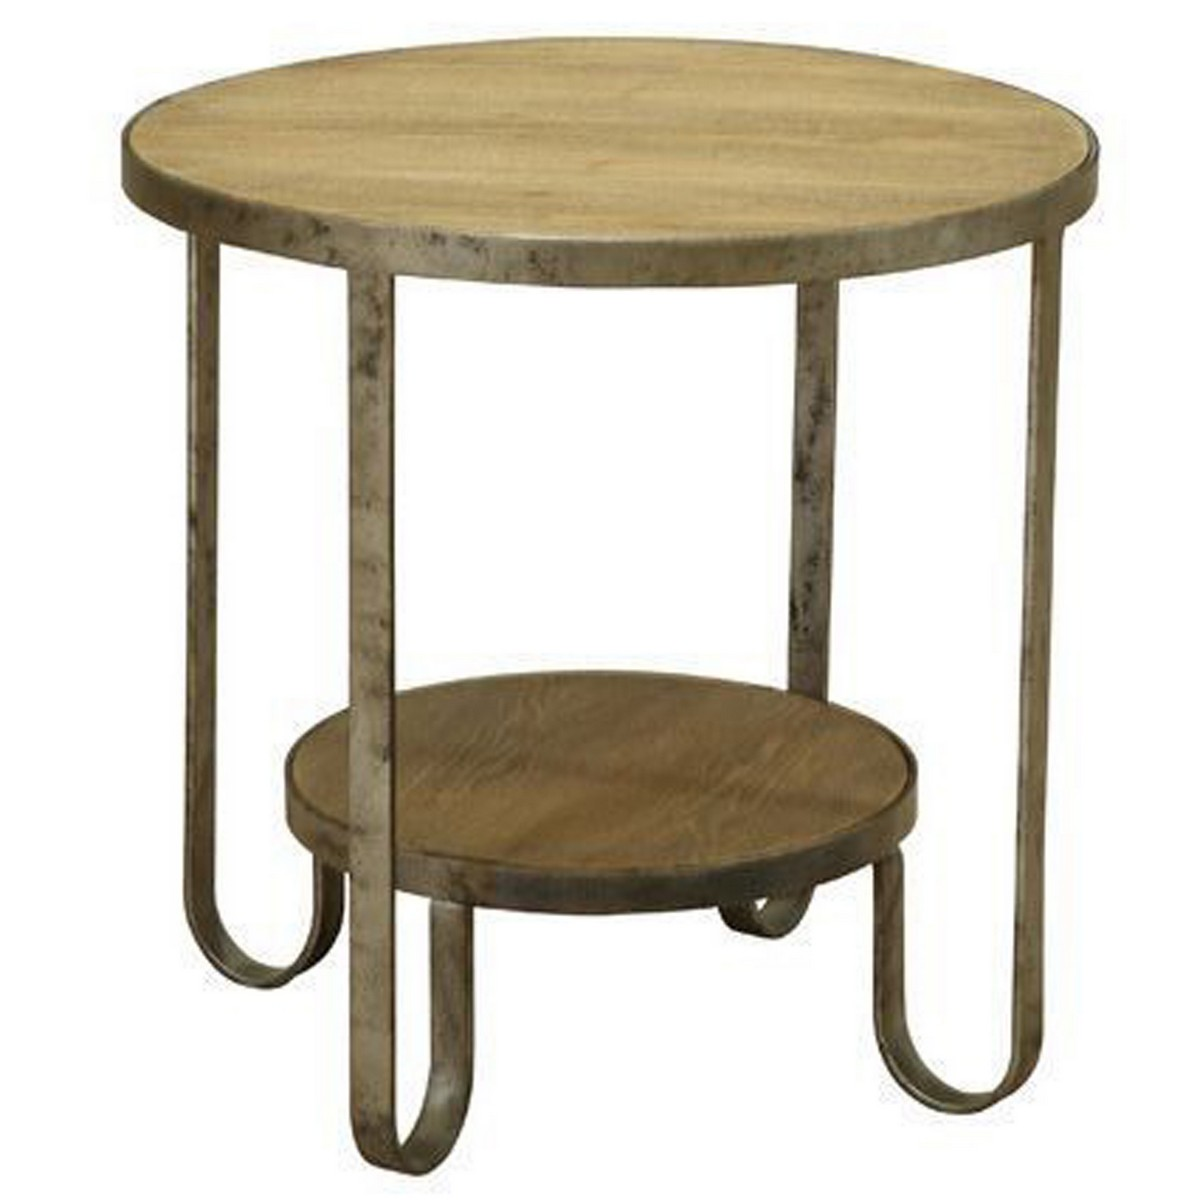 Armen Living Barstow End Table With Gunmetal Frame